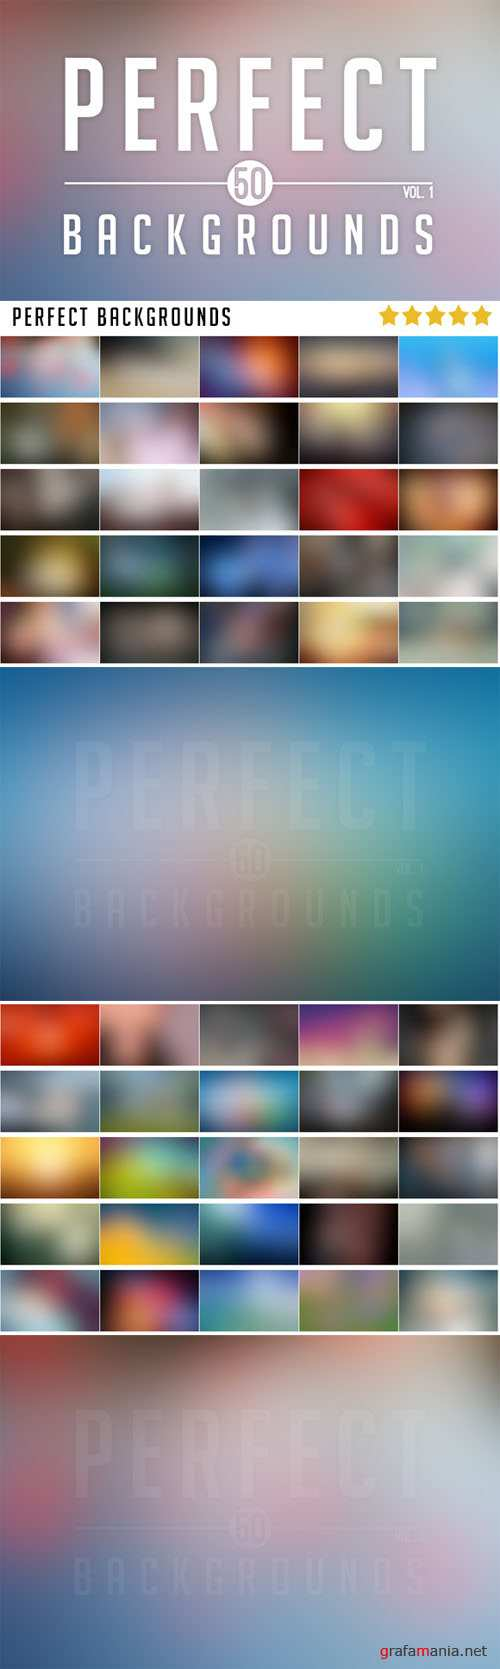 50 Perfect Blurred Backgrounds Vol.1 - CM 19991